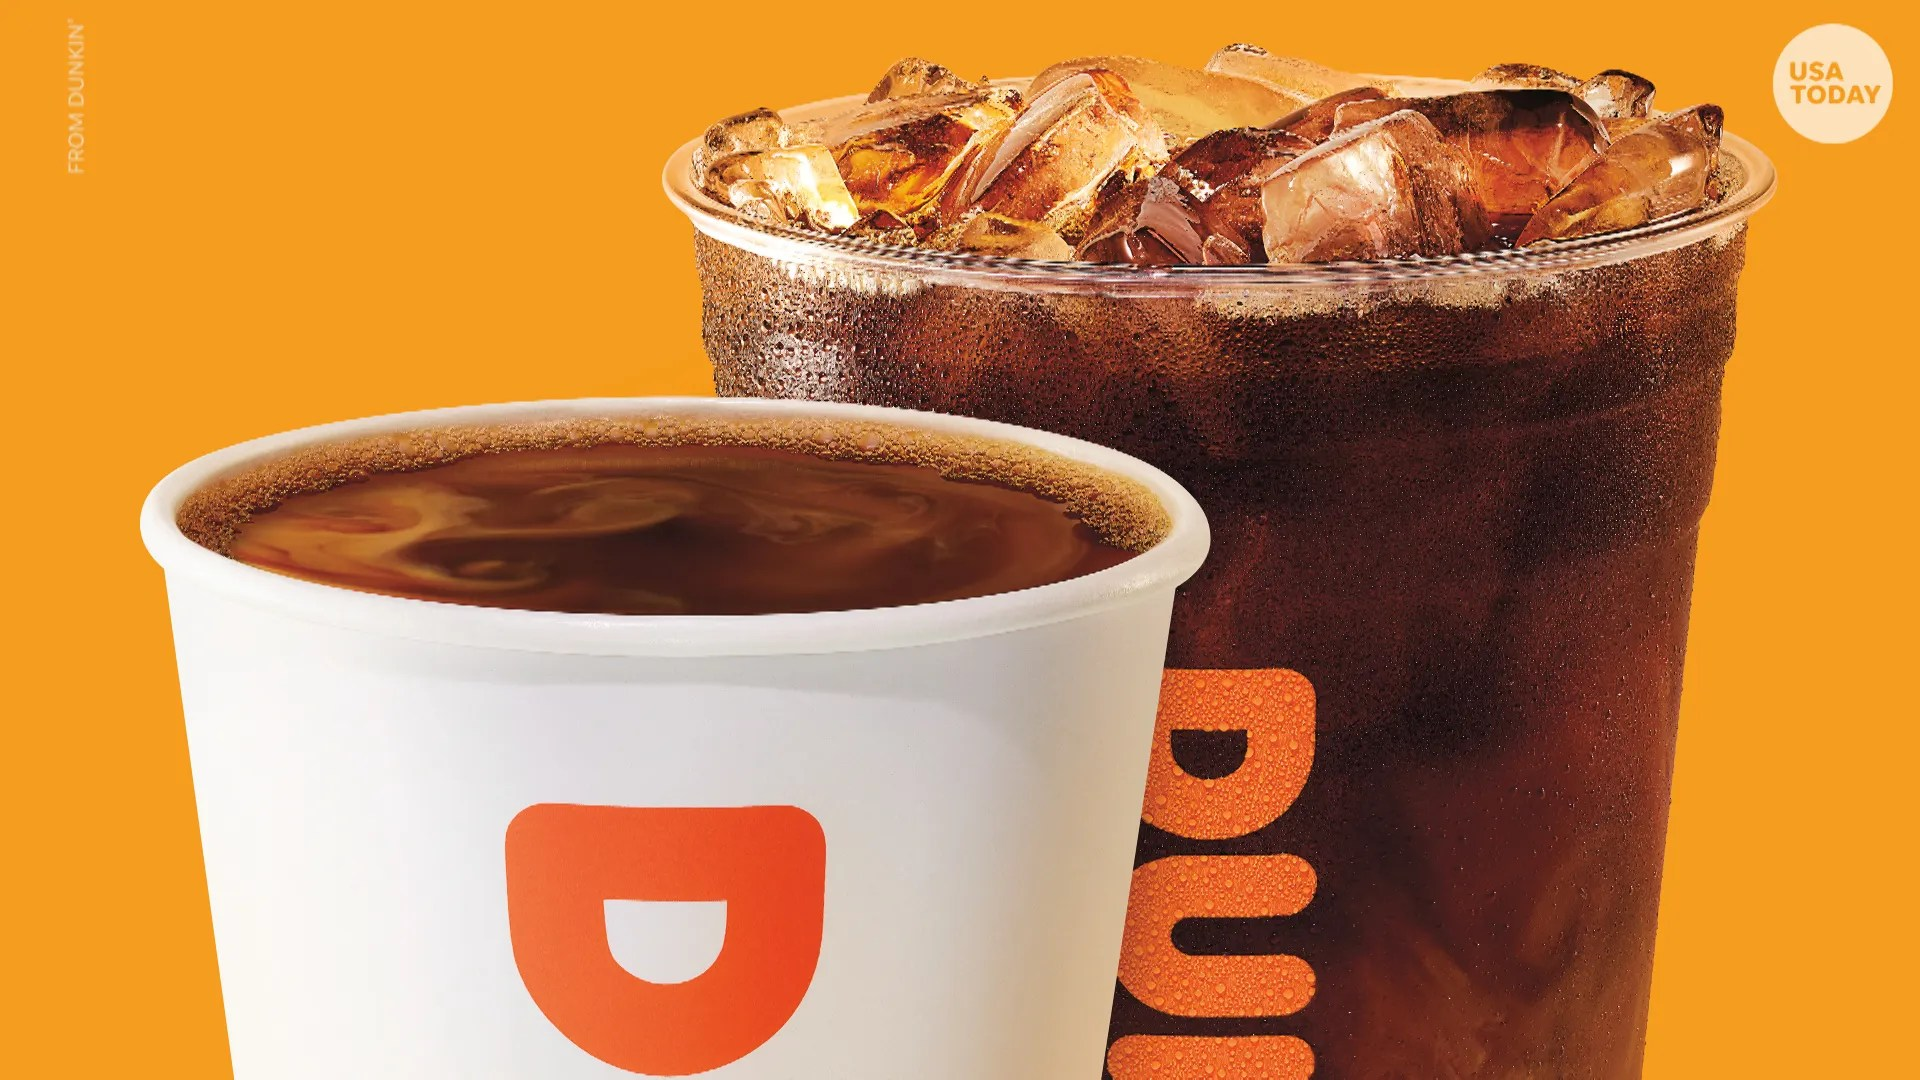 Dunkin' has a hot coffee special Mondays in February.